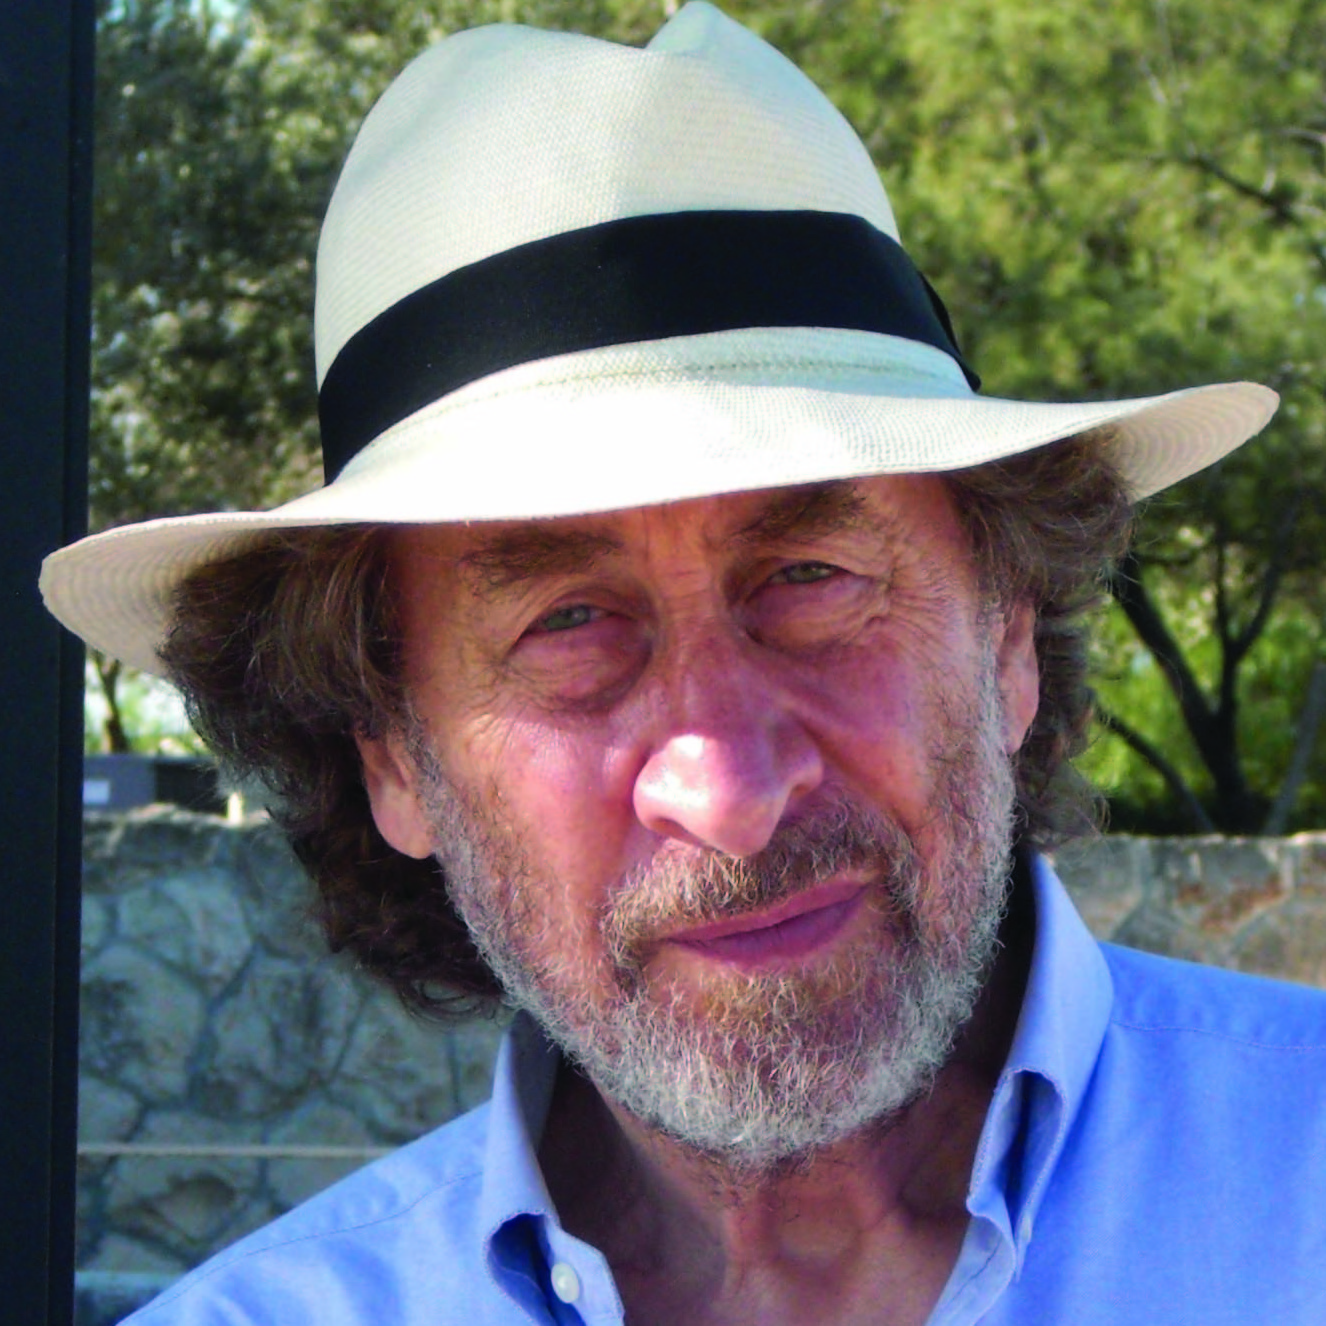 Howard Jacobson won the Man Booker Prize in 2010 for The Finkler Question, a novel about the British Jewish experience.